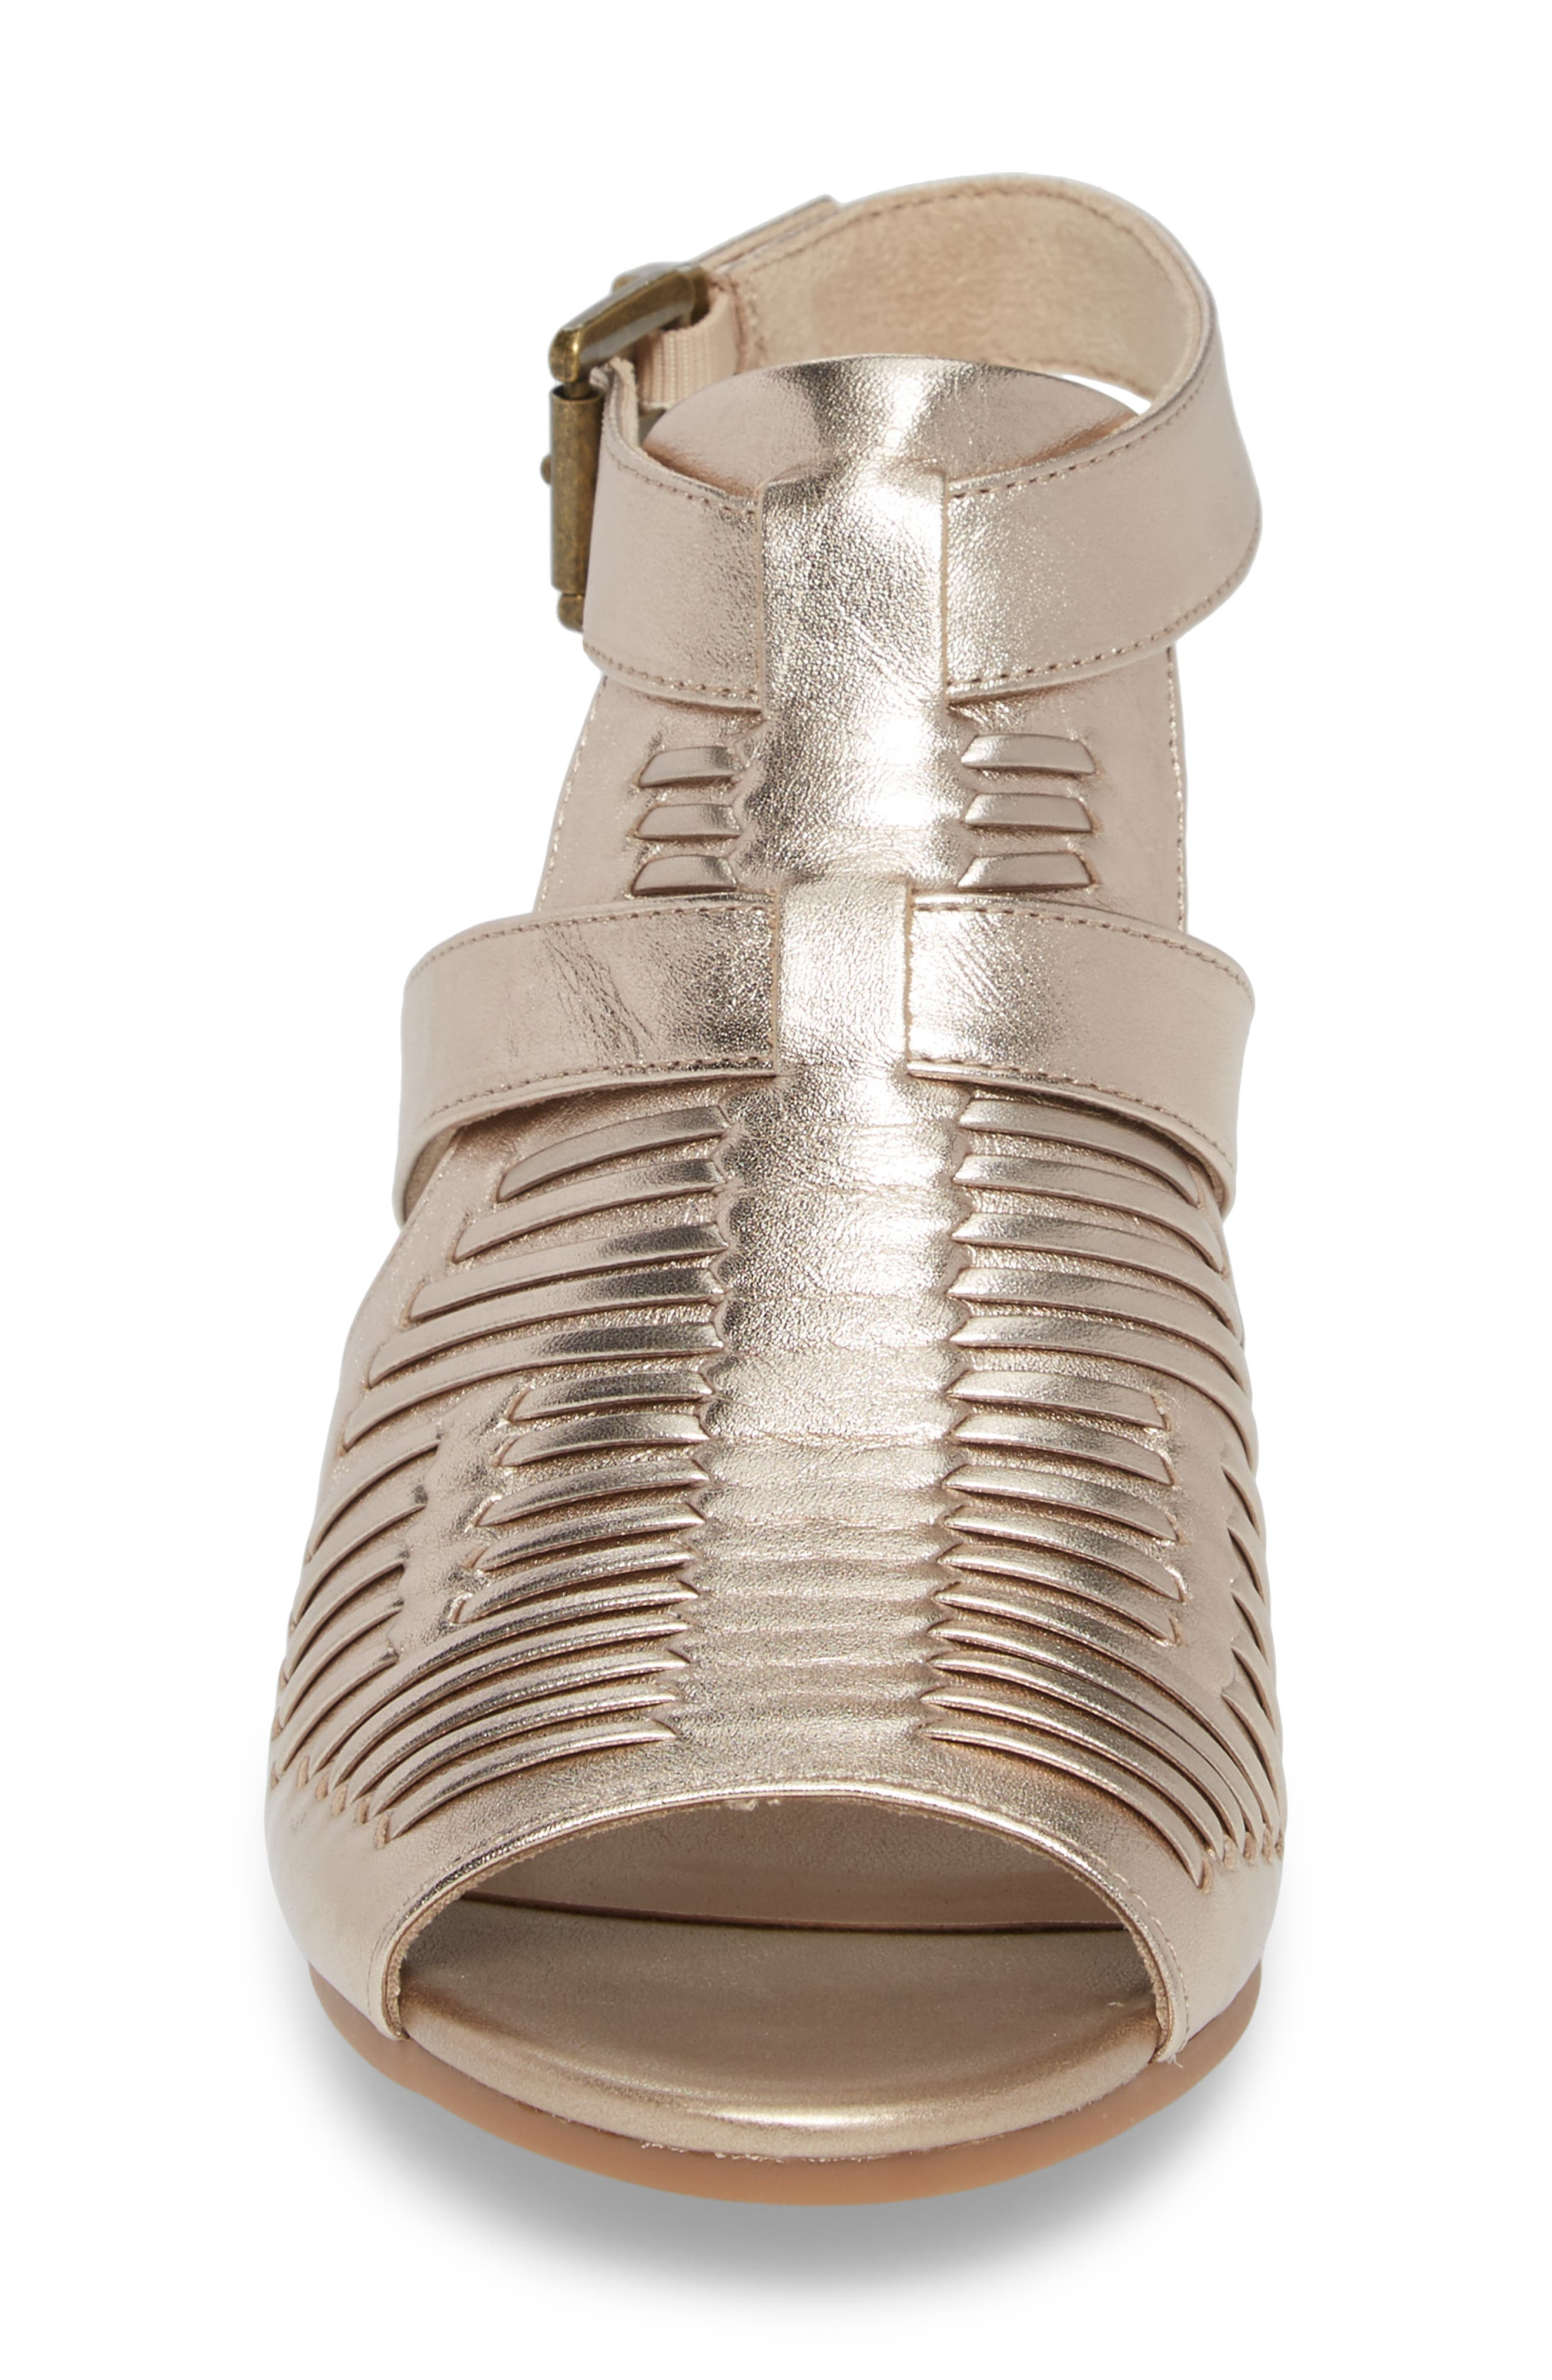 Finley Ankle Strap Sandal,                             Alternate thumbnail 4, color,                             Champagne Fabric